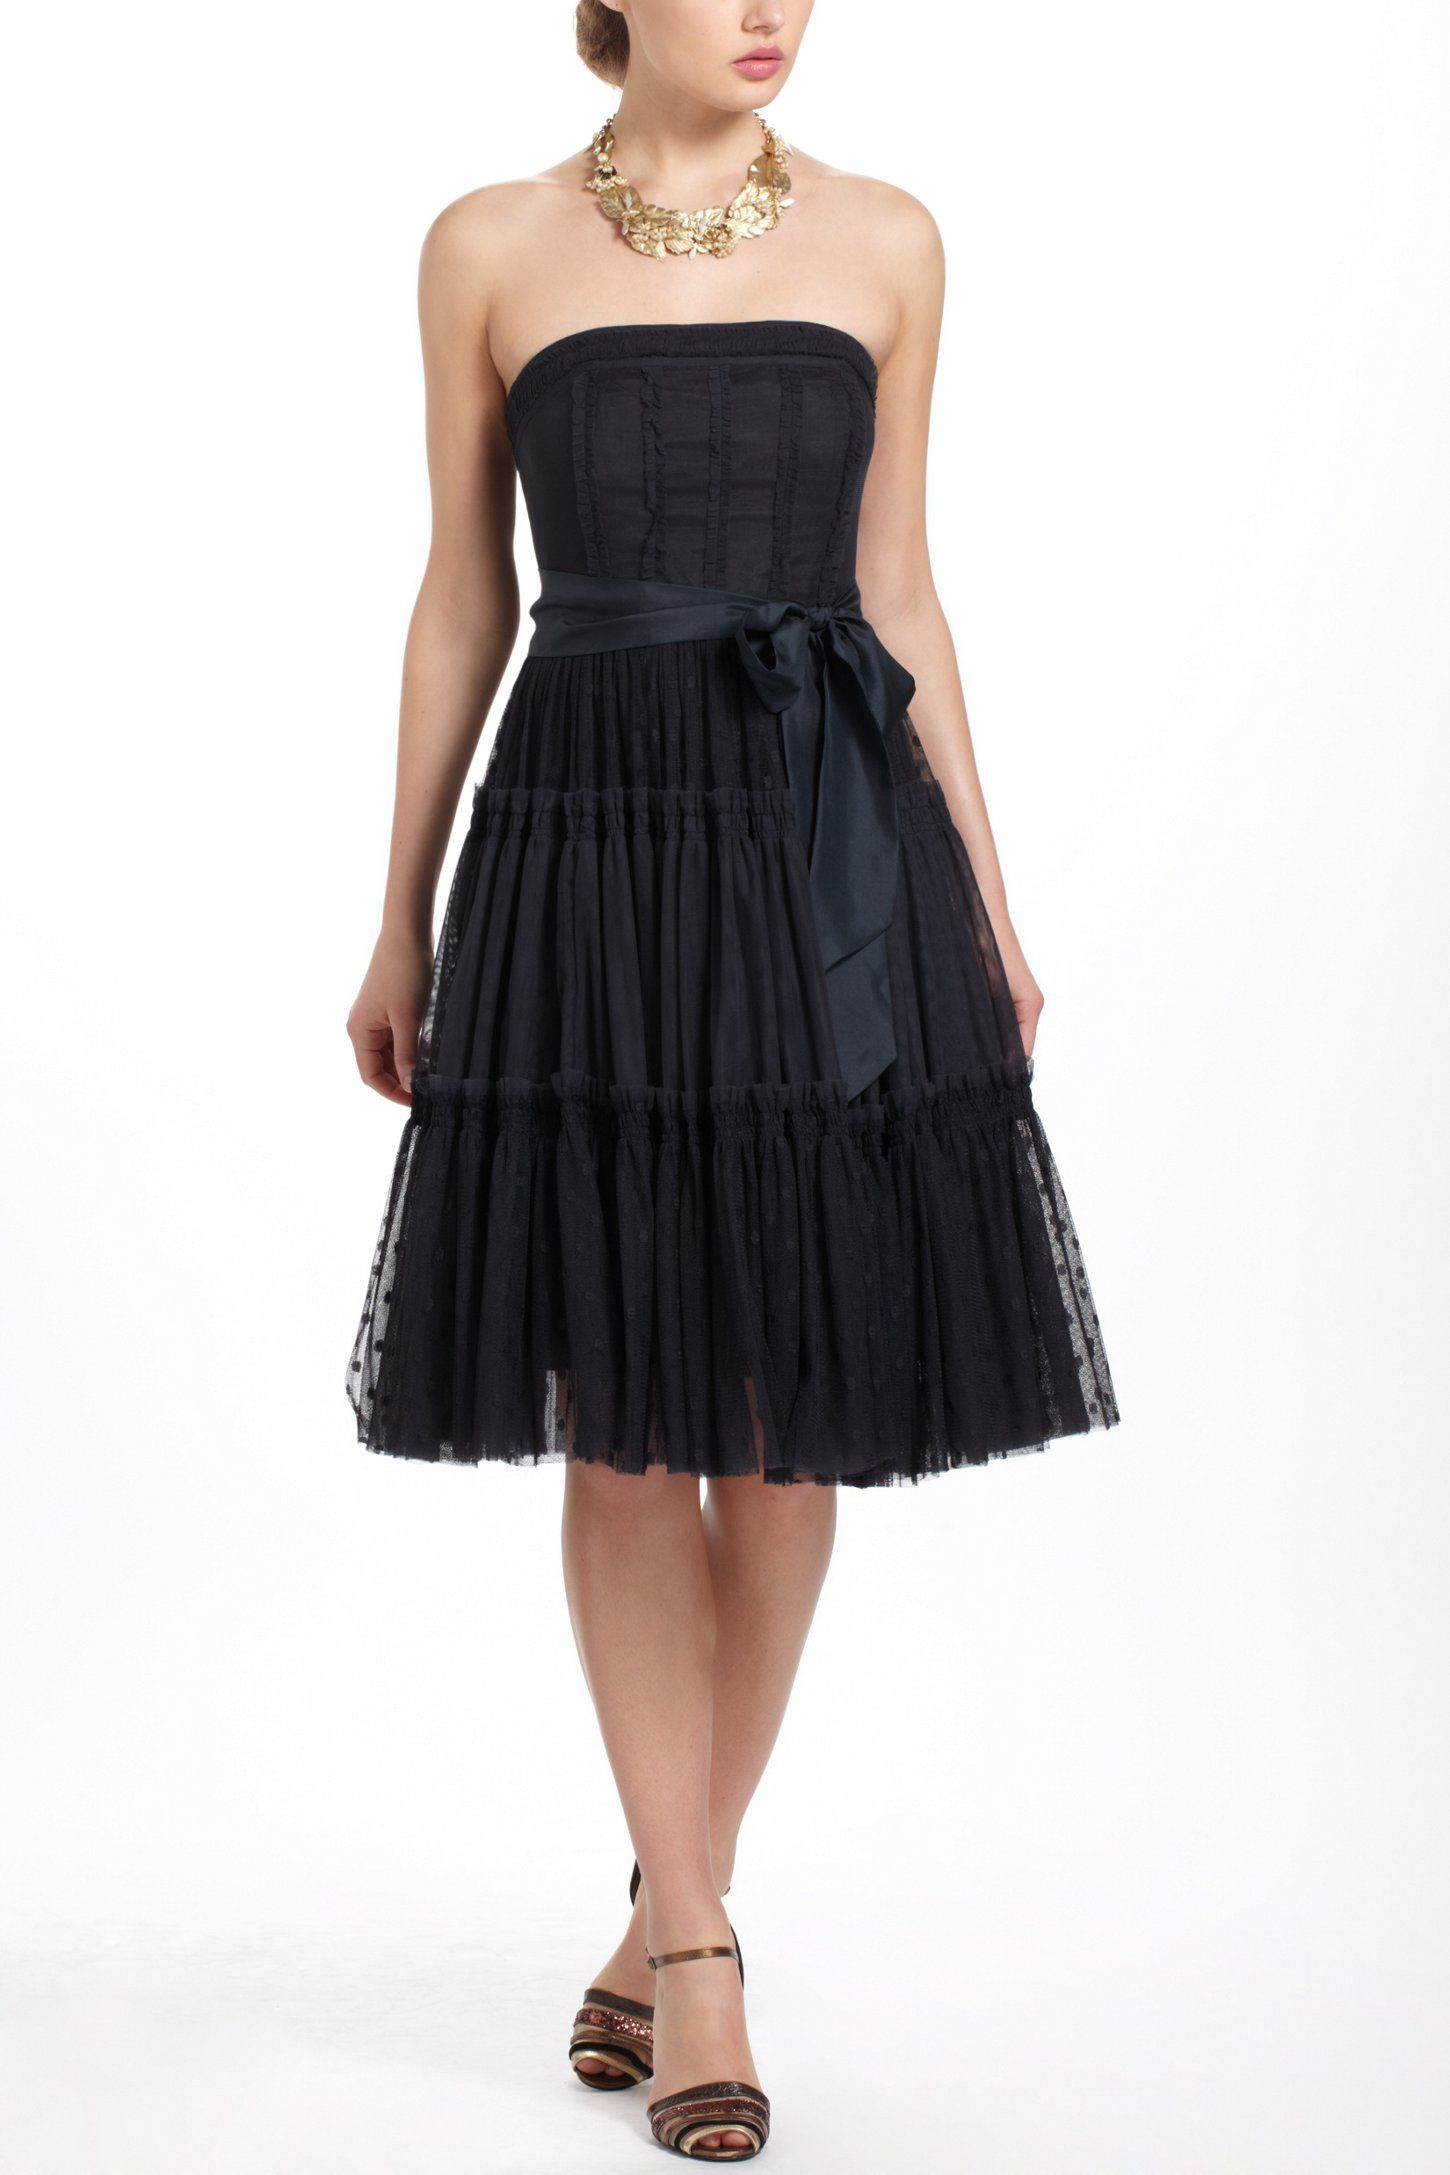 Ypres tulle dress anthropologie holiday christmas